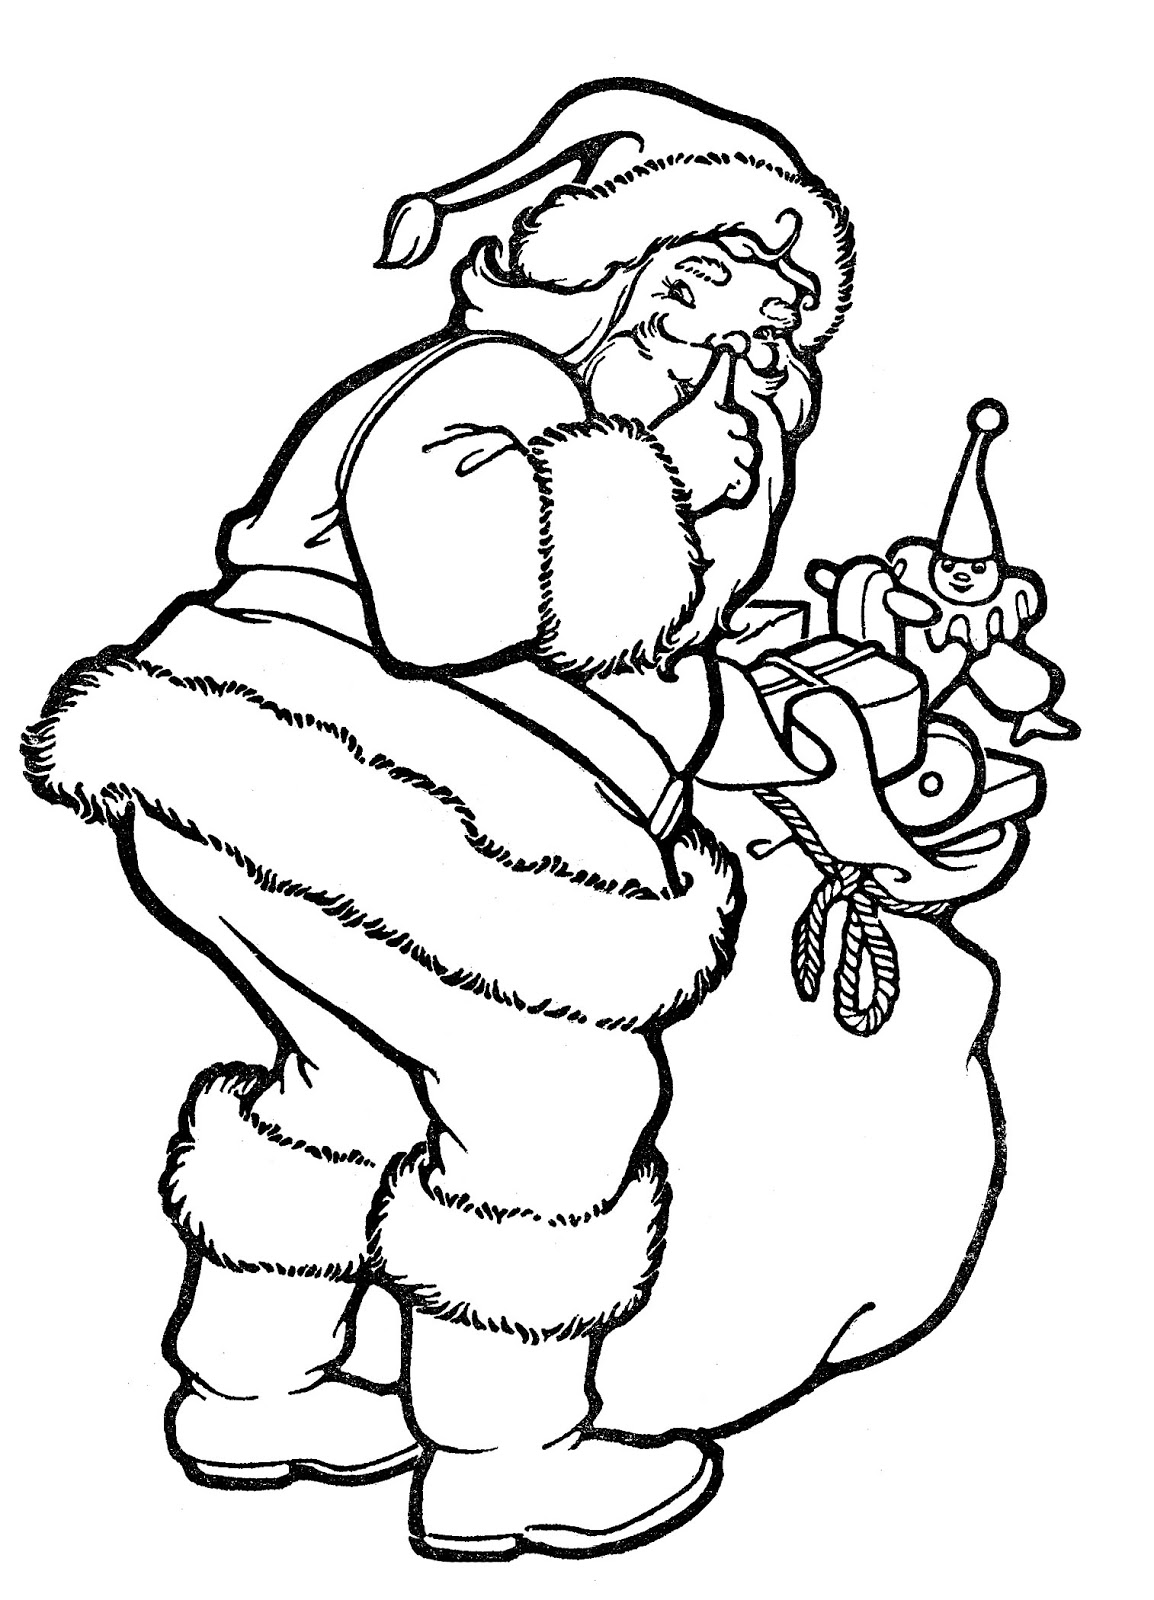 Line Art Xmas : Vintage christmas line art santa with toys the